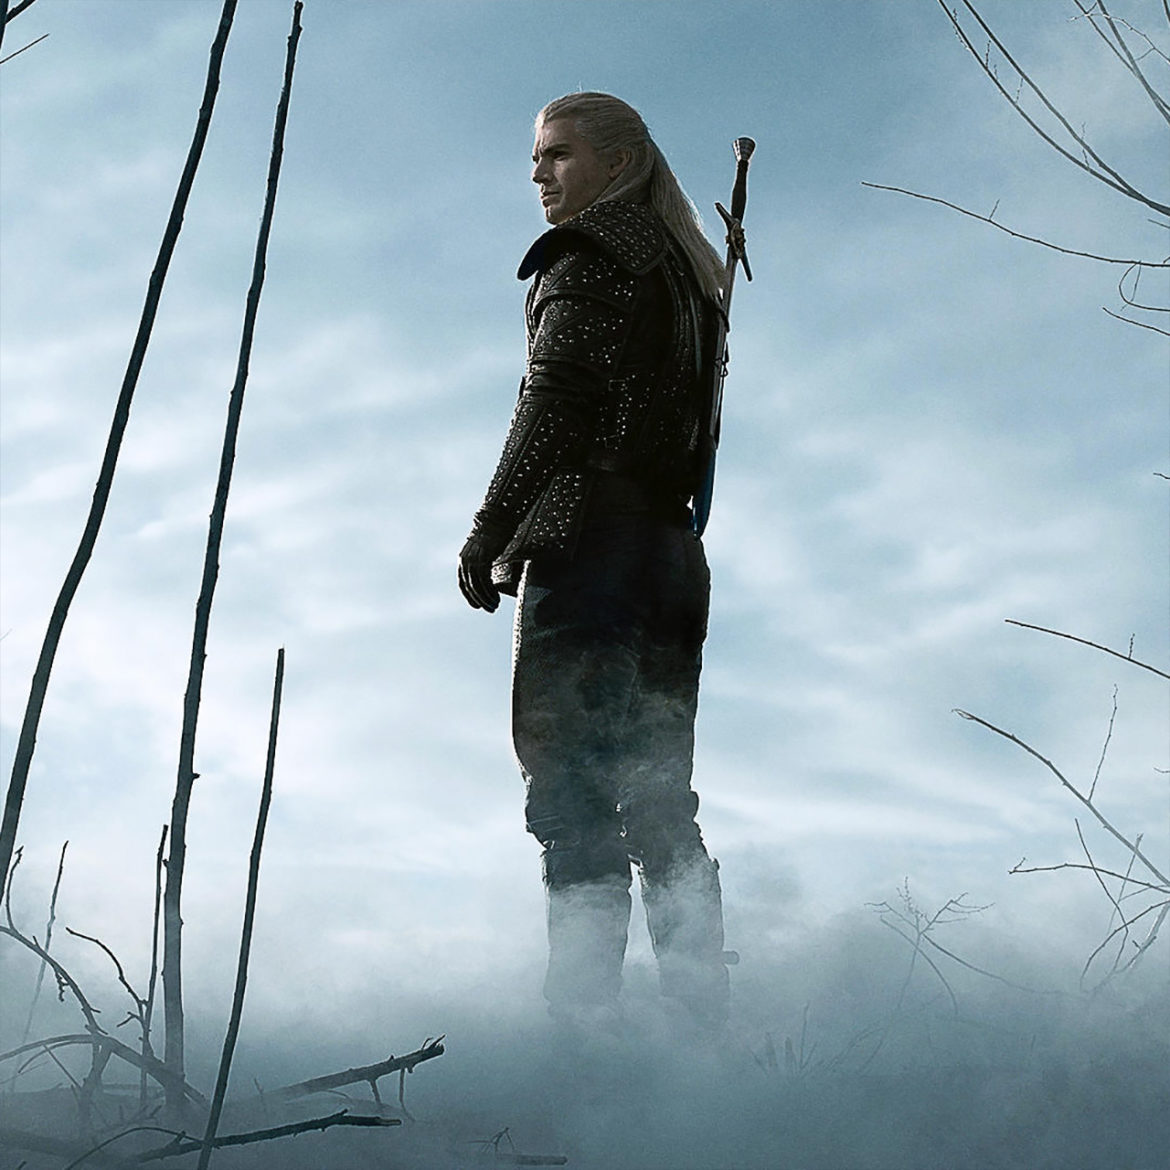 Henry Cavill as Geralt of Rivia in the Netflix Witcher series.